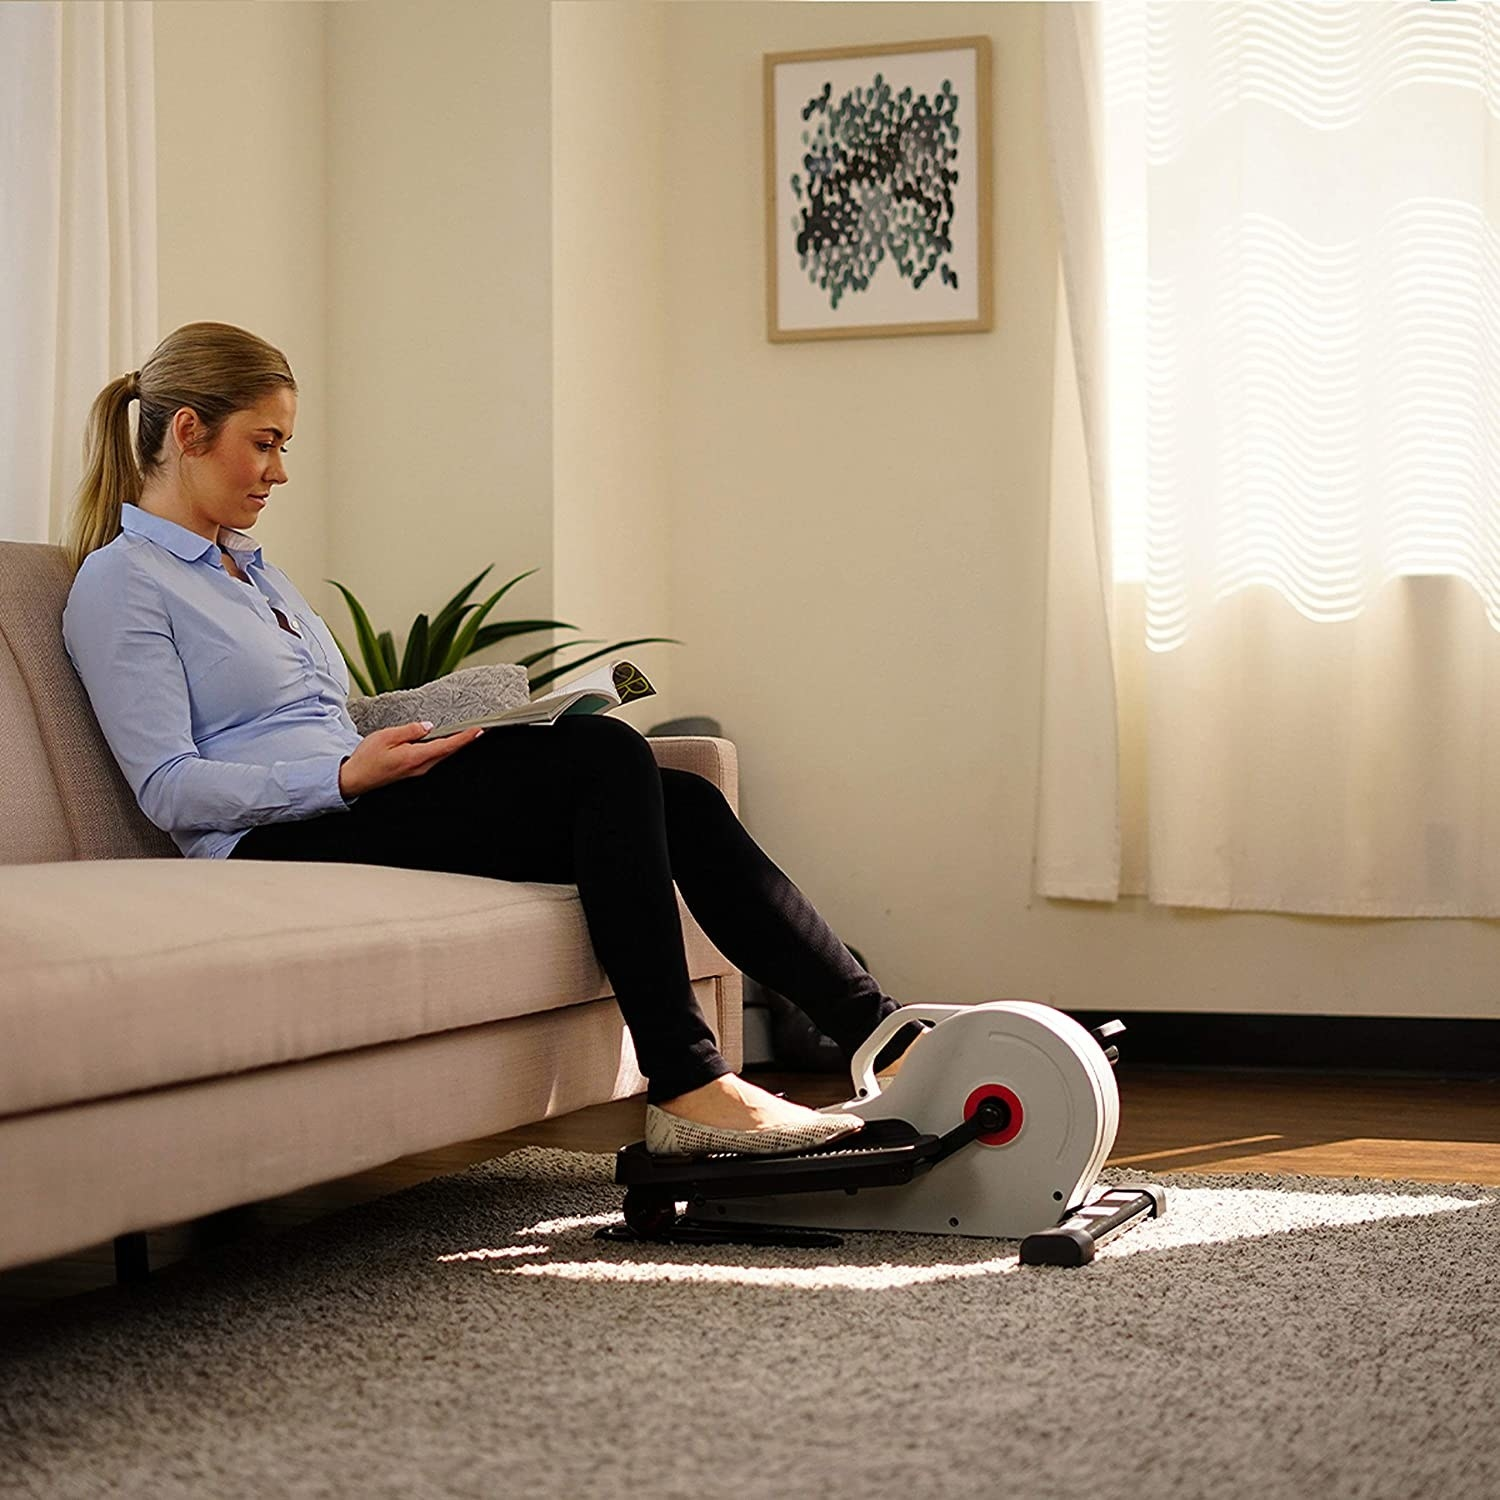 person using the elliptical while sitting on the couch